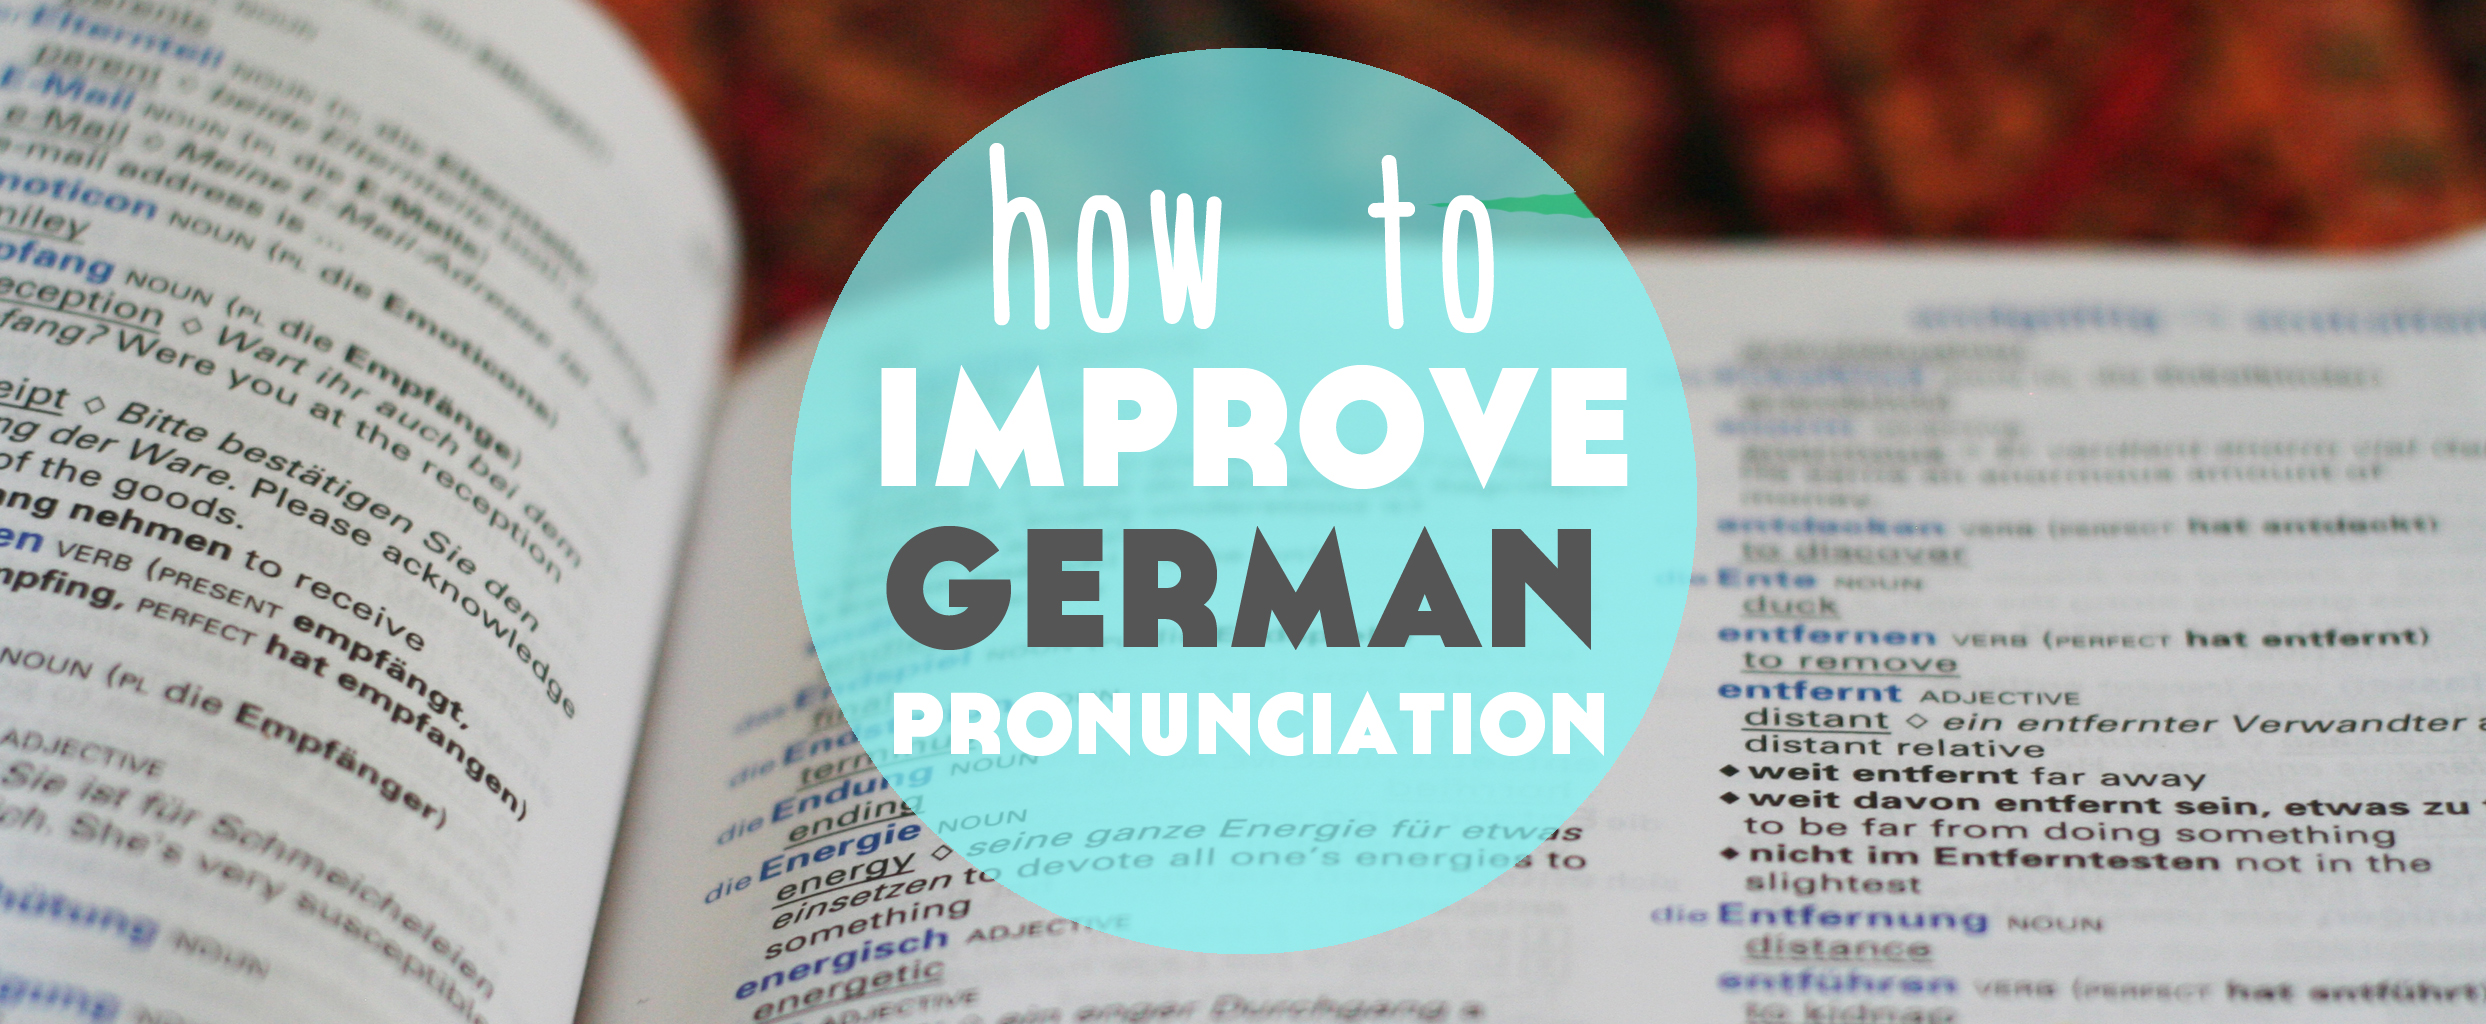 12 Top Tips: How to Improve German Pronunciation - Lindsay Does Languages